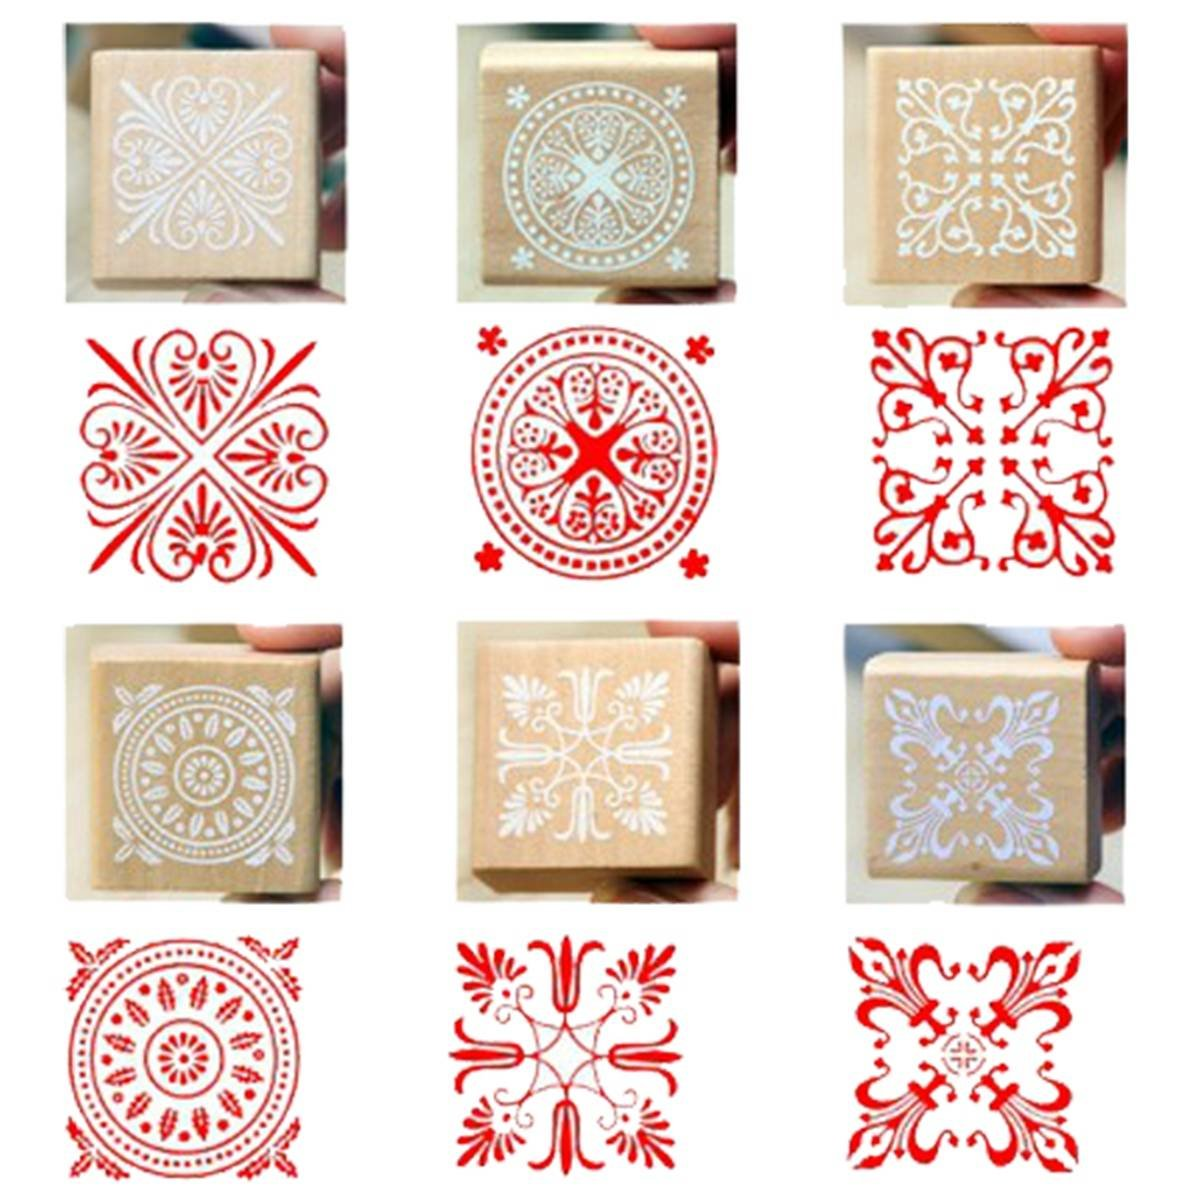 6 Assorted Wooden Stamp Rubber Seal Square Handwriting DIY Craft Flower Lace вейкборд liquid force wake park flex assorted 143